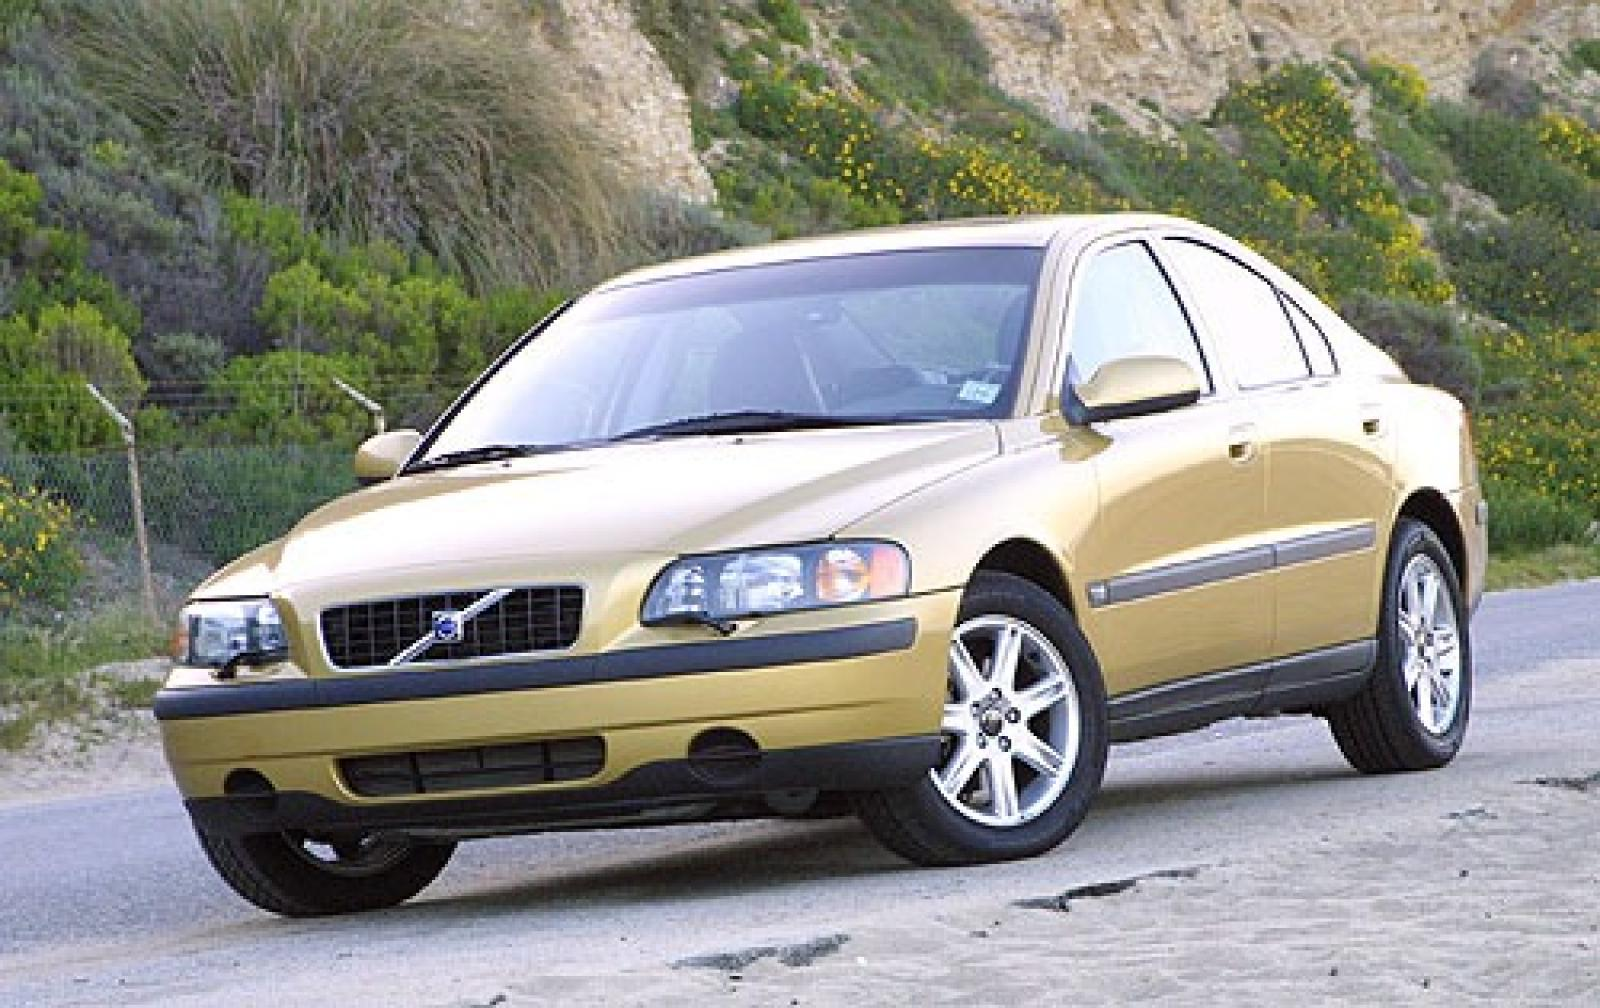 2001 Volvo S60 | Family Cars | Pinterest | Volvo s60, Volvo and Cars